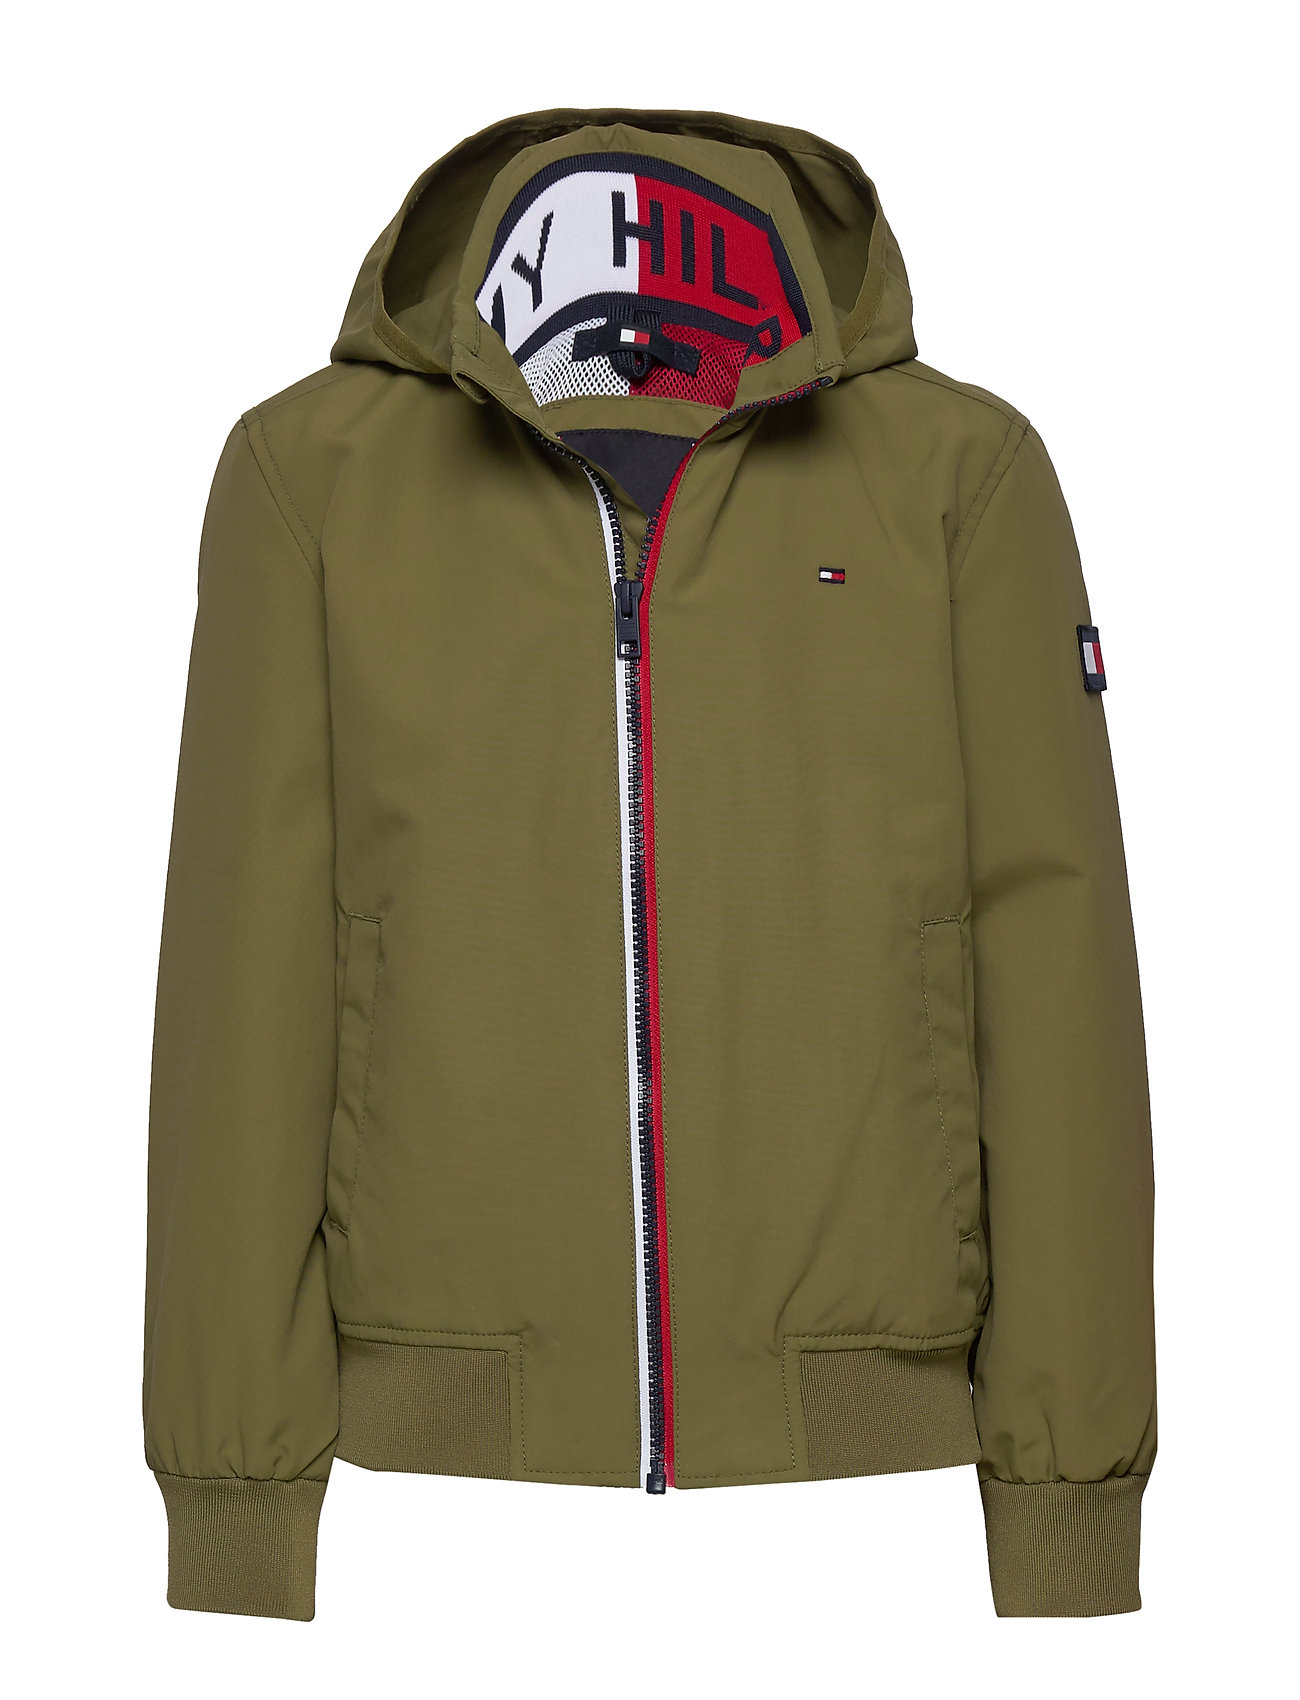 Tommy Hilfiger ESSENTIAL JACKET - UNIFORM OLIVE